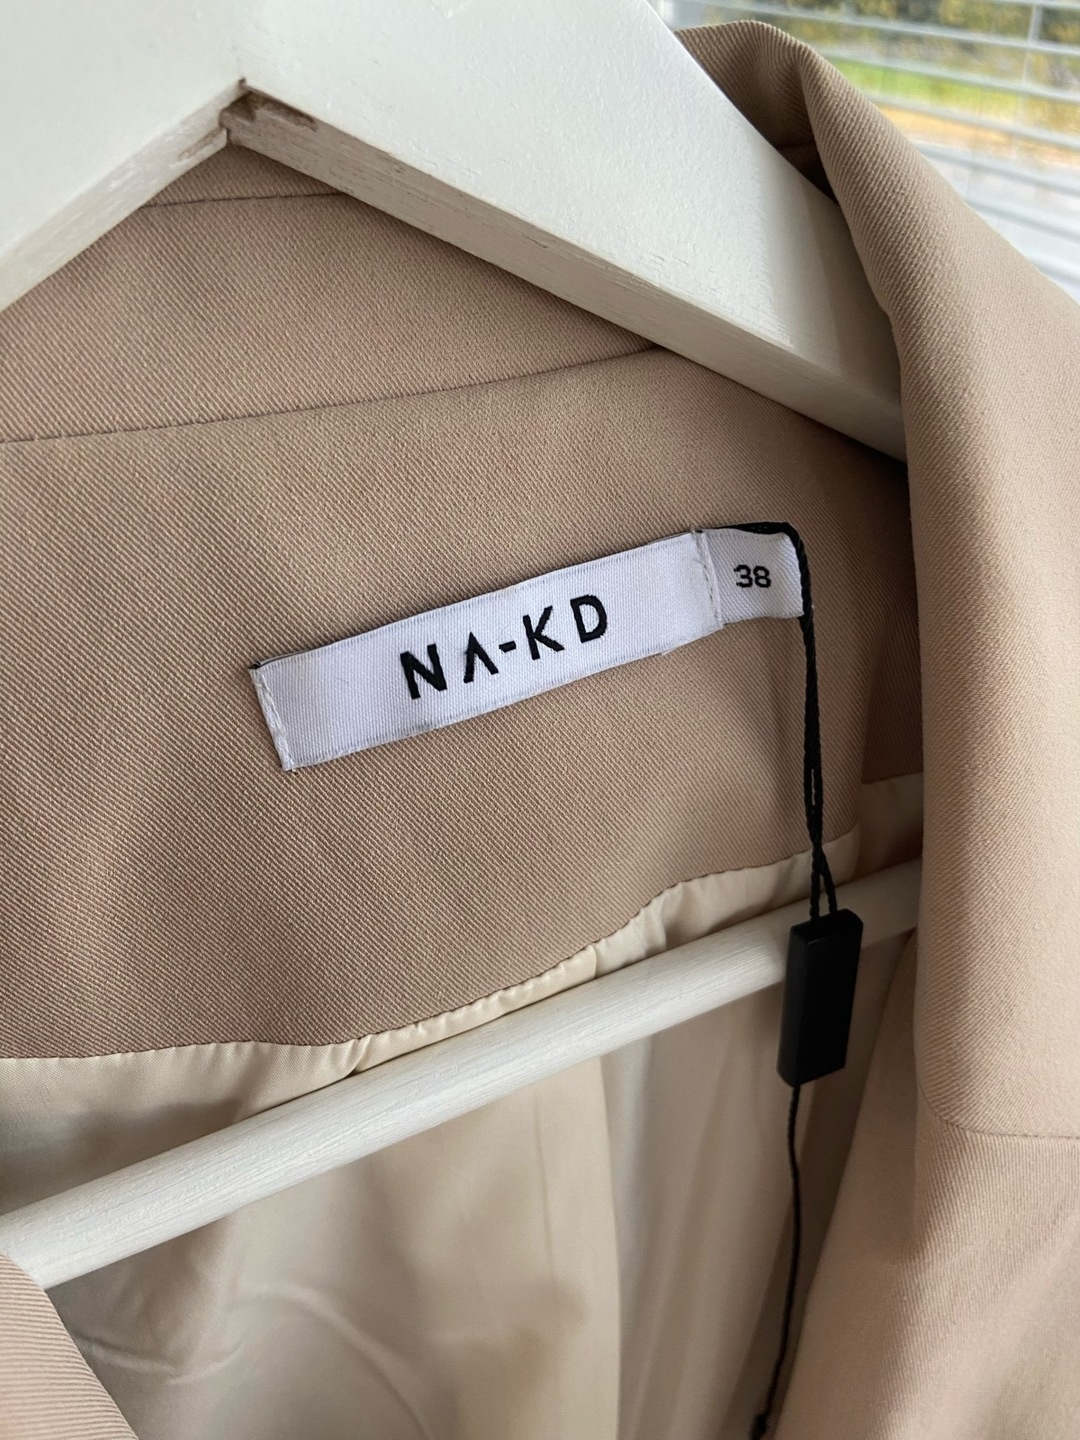 Women's blazers & suits - NA-KD photo 3